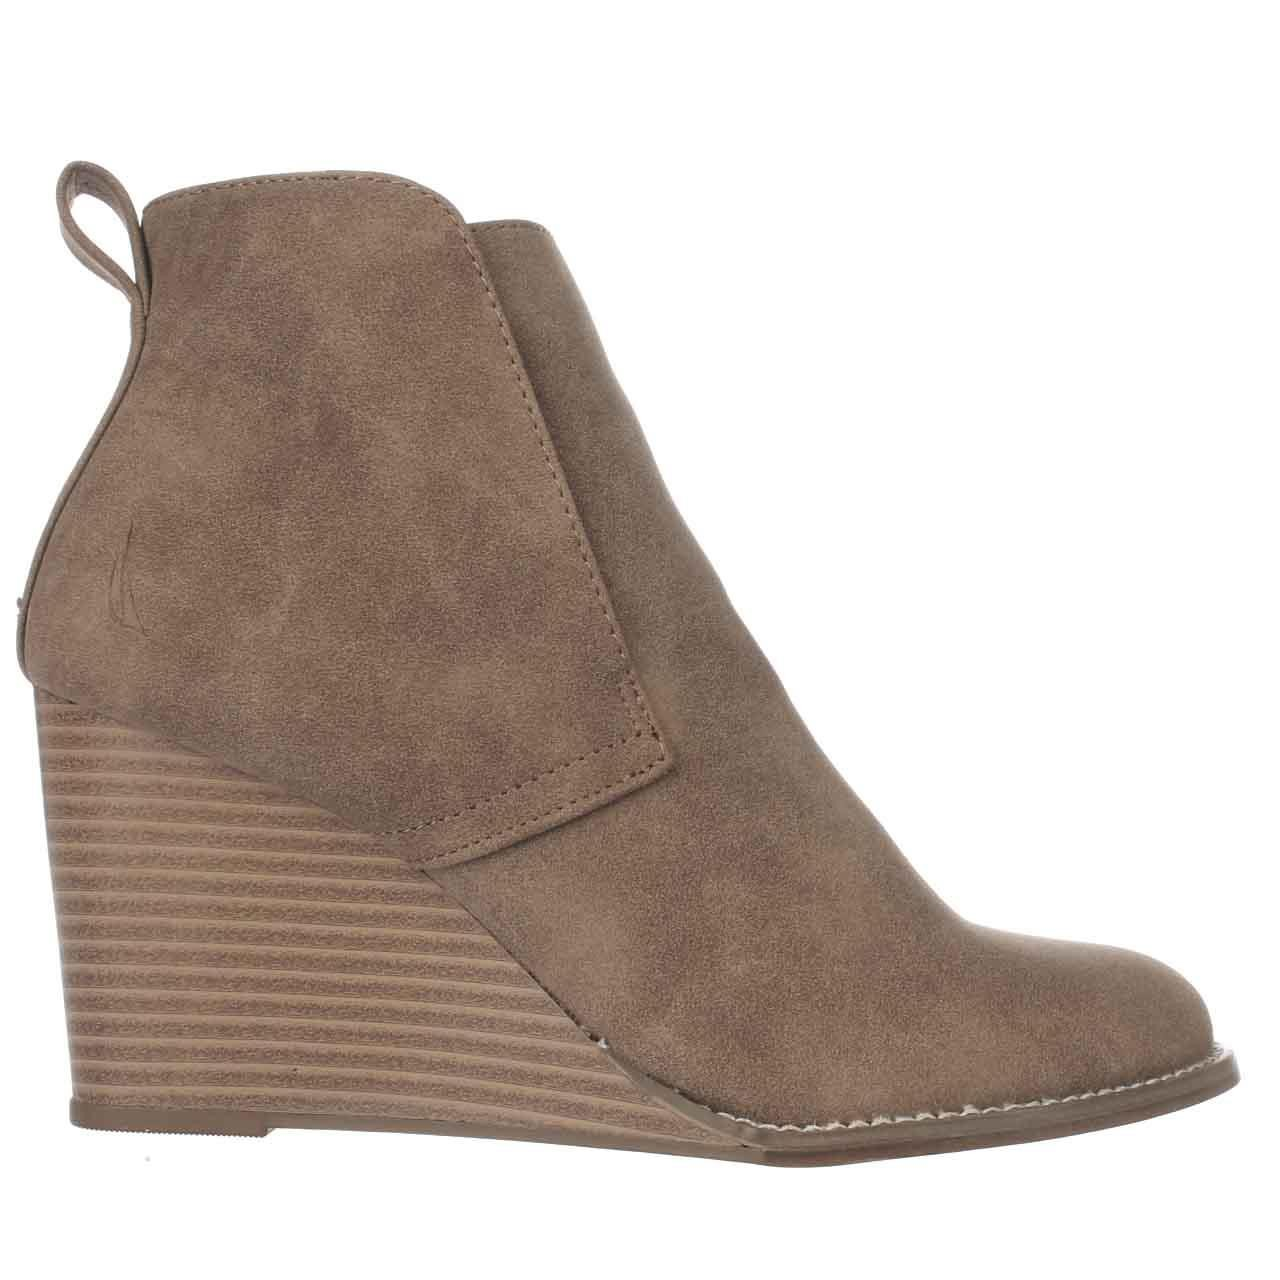 048c4079469 Nautica Calyan Wedge Ankle Boots